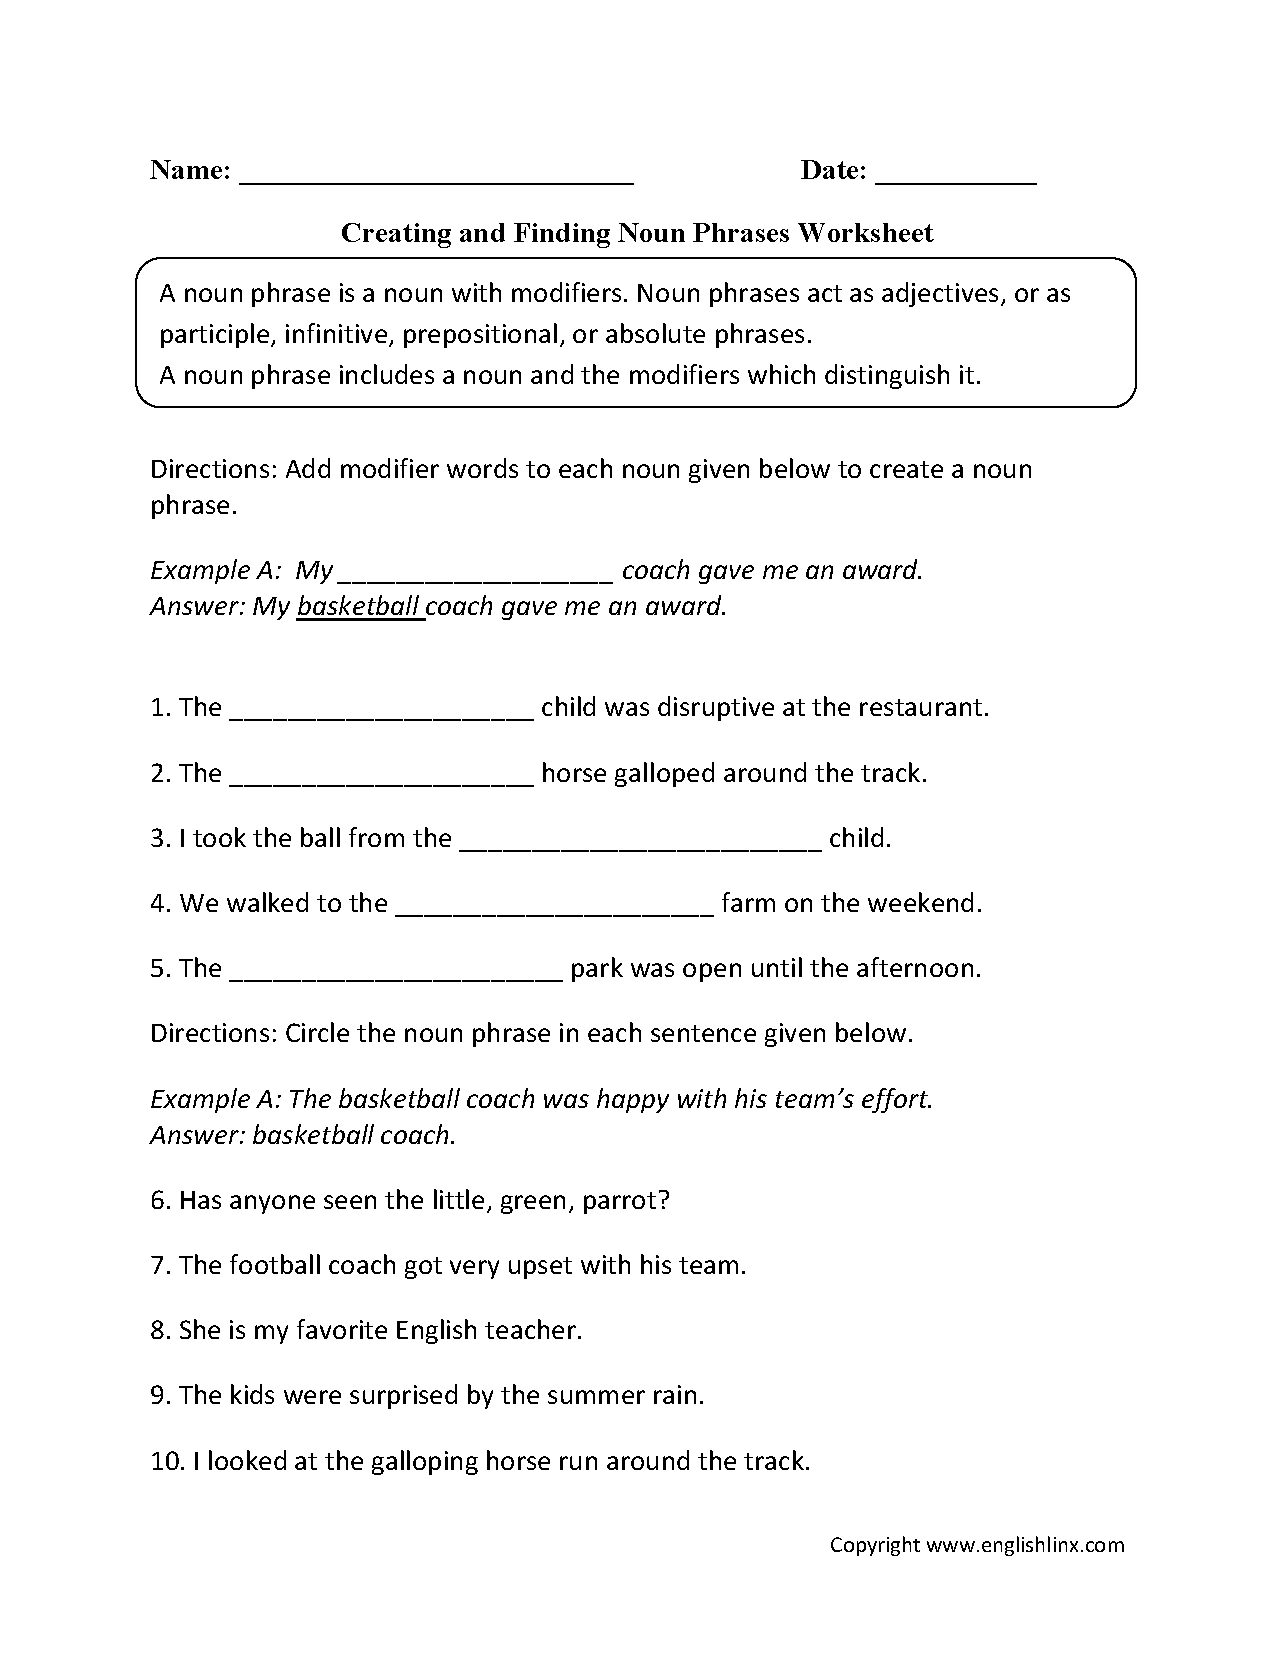 Creating And Finding Noun Phrases Worksheets